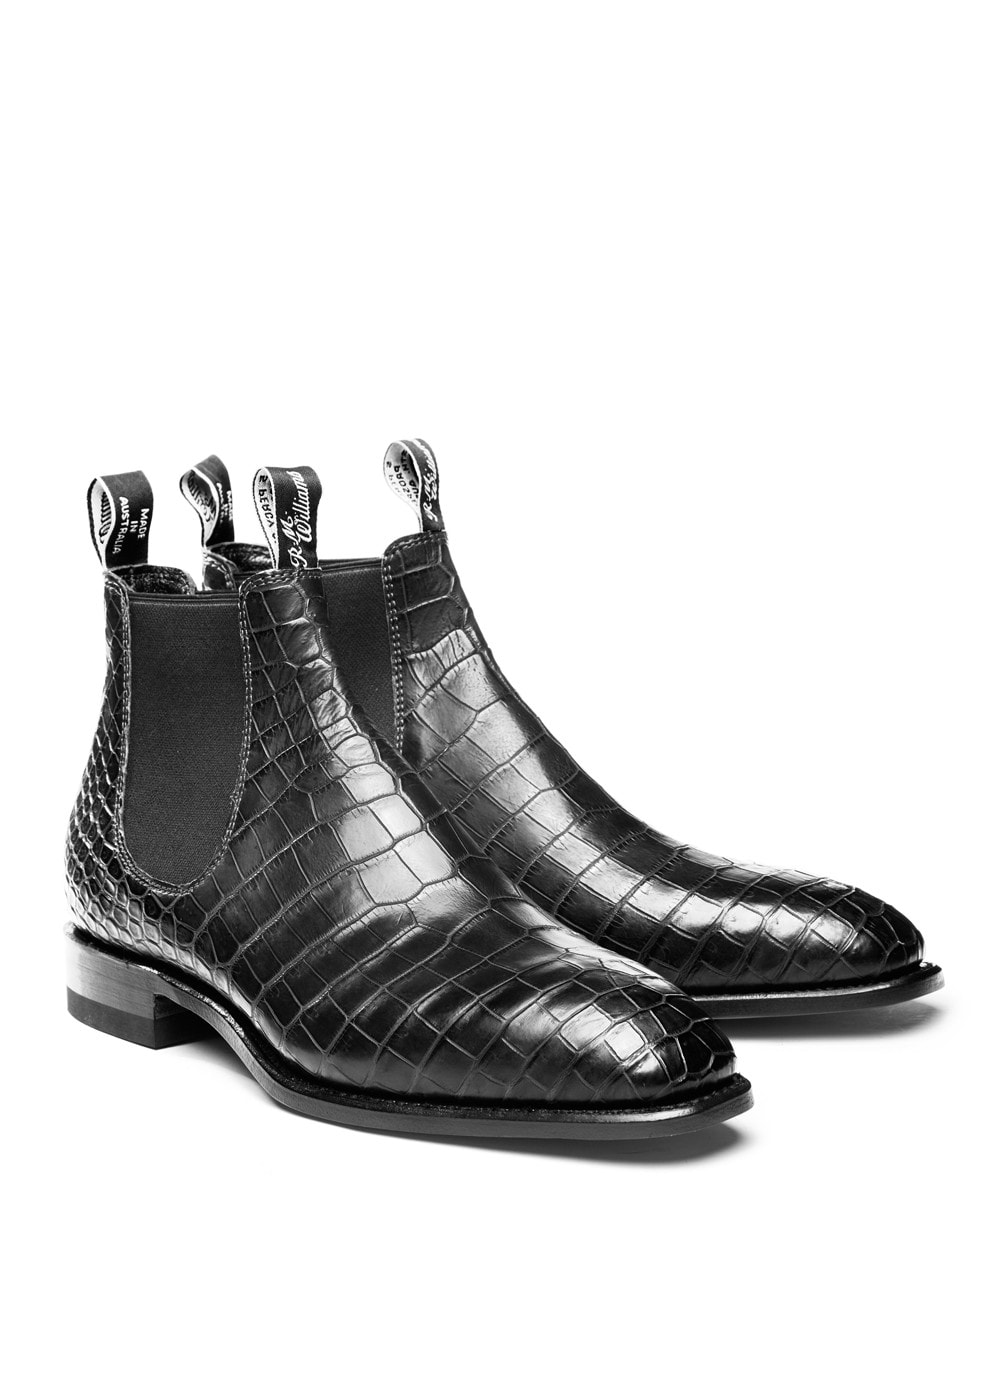 RM Williams Crocodile Boots - Mens from